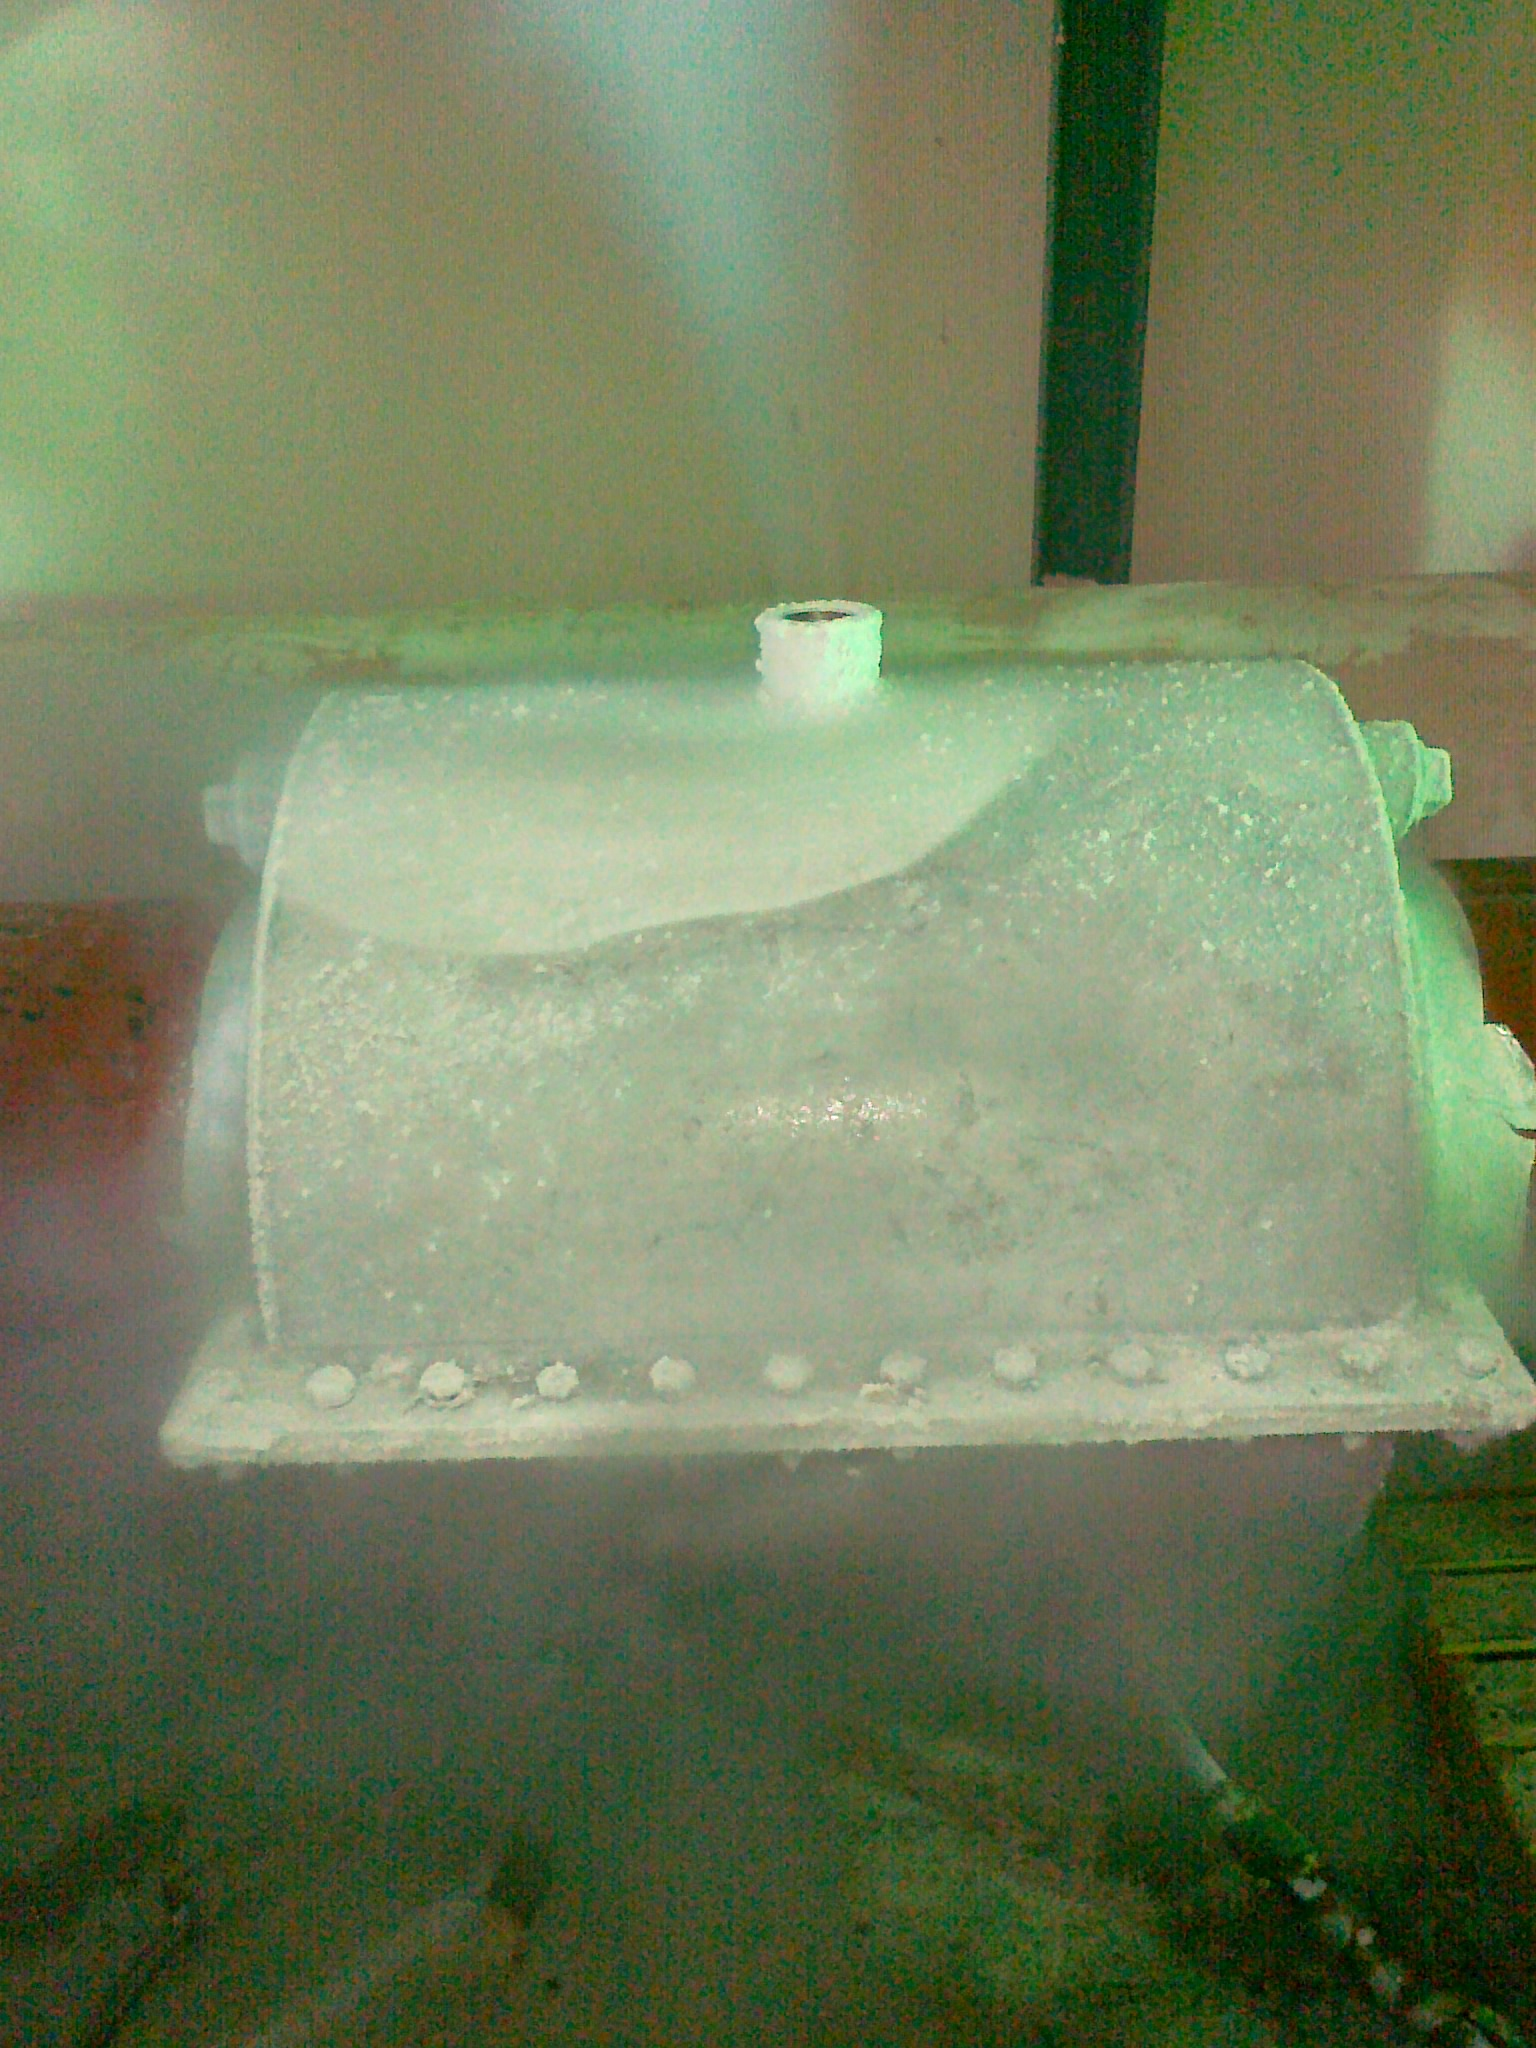 pipe freezing